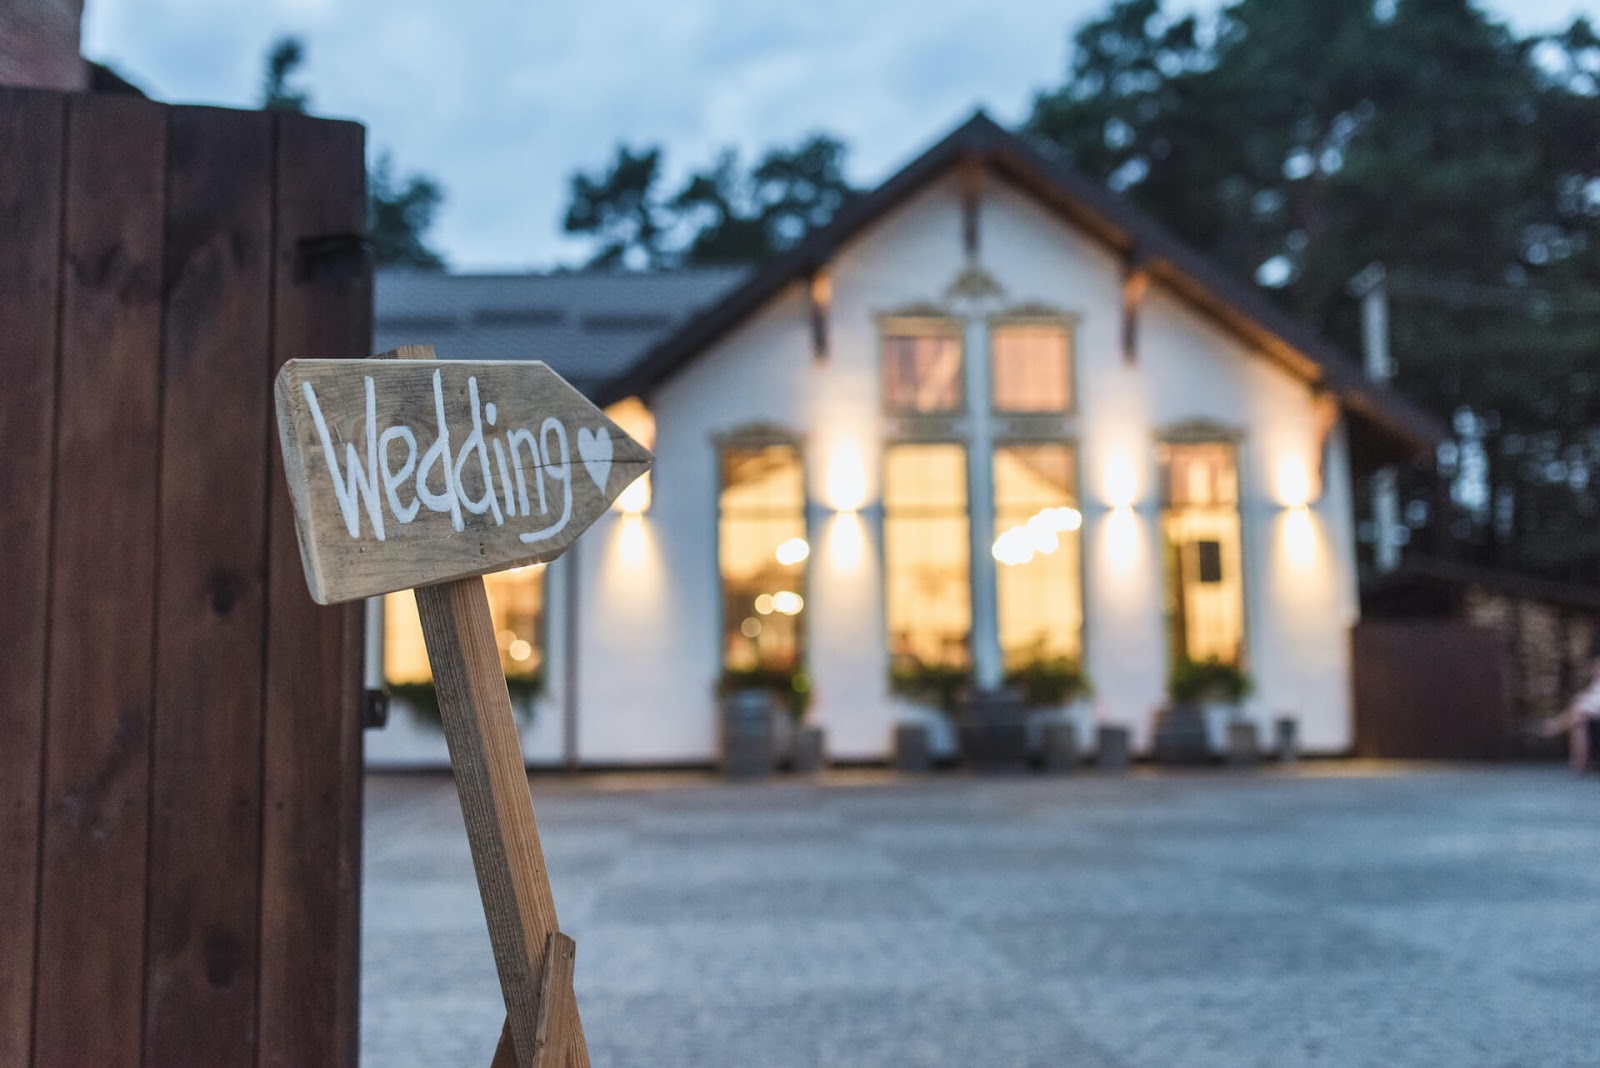 Wedding sign pointing to a building